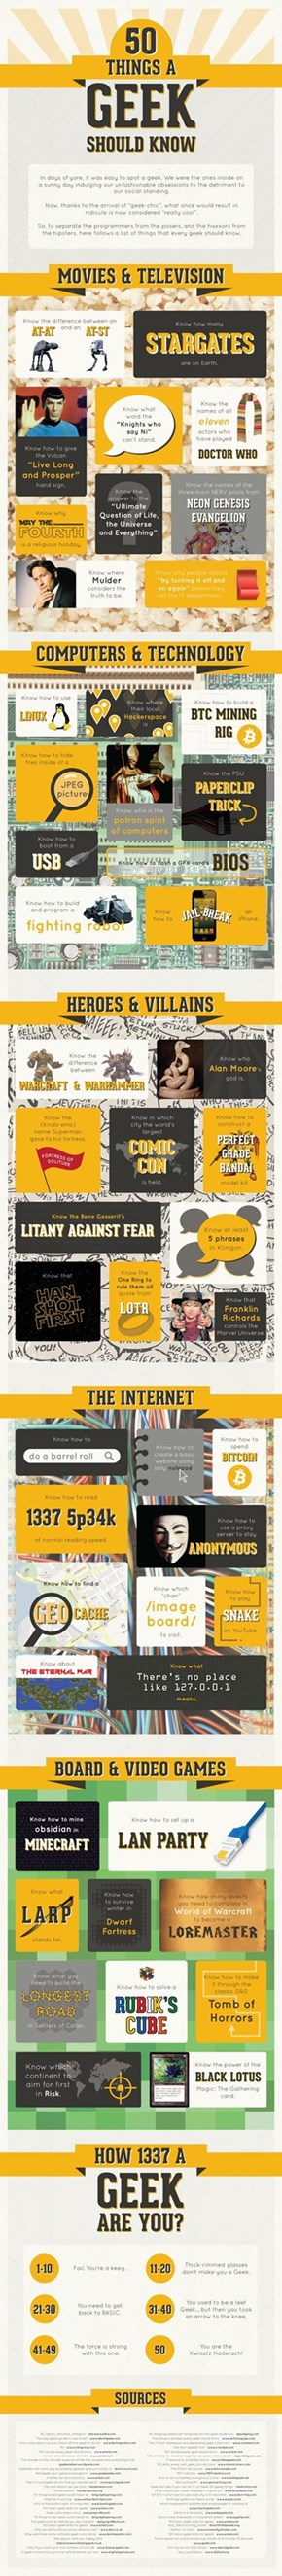 50 Things a Geek Should Know